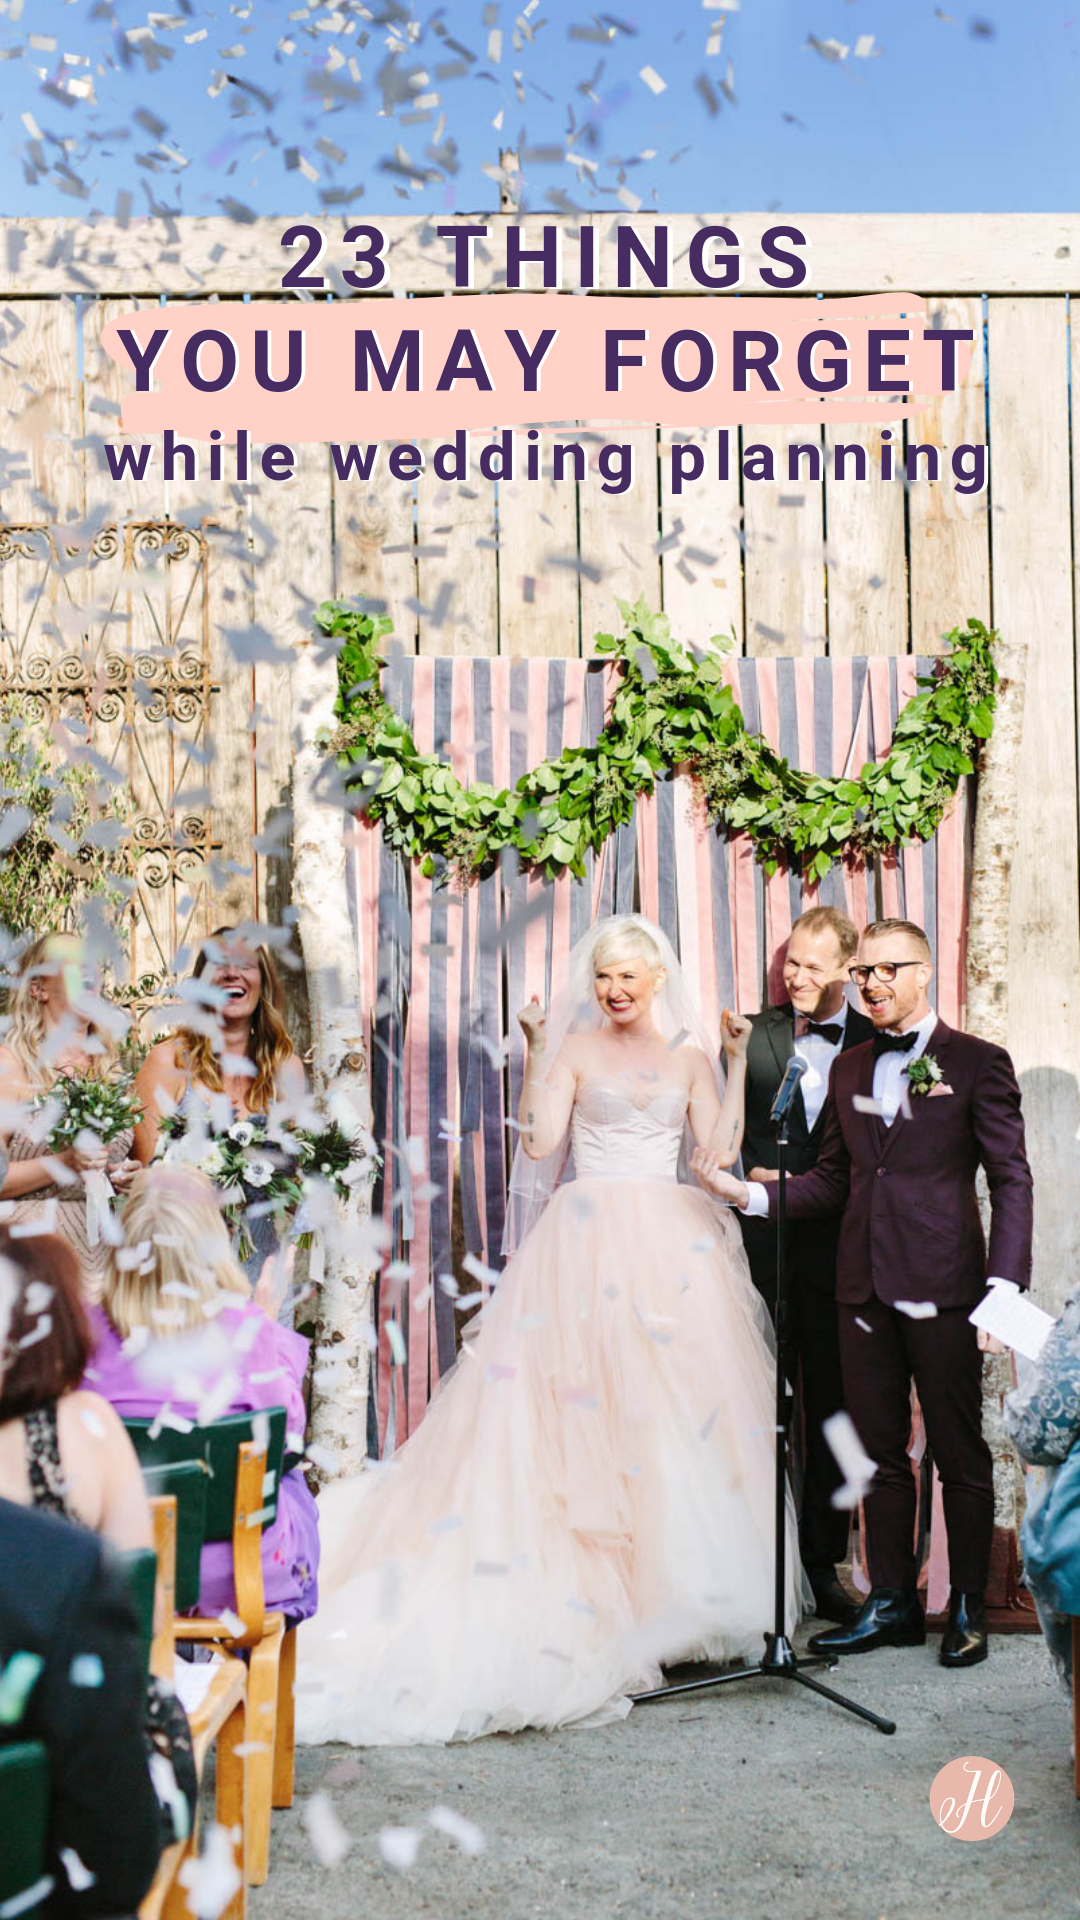 23 Things You May Forget During Wedding Planning | Here Comes The Guide